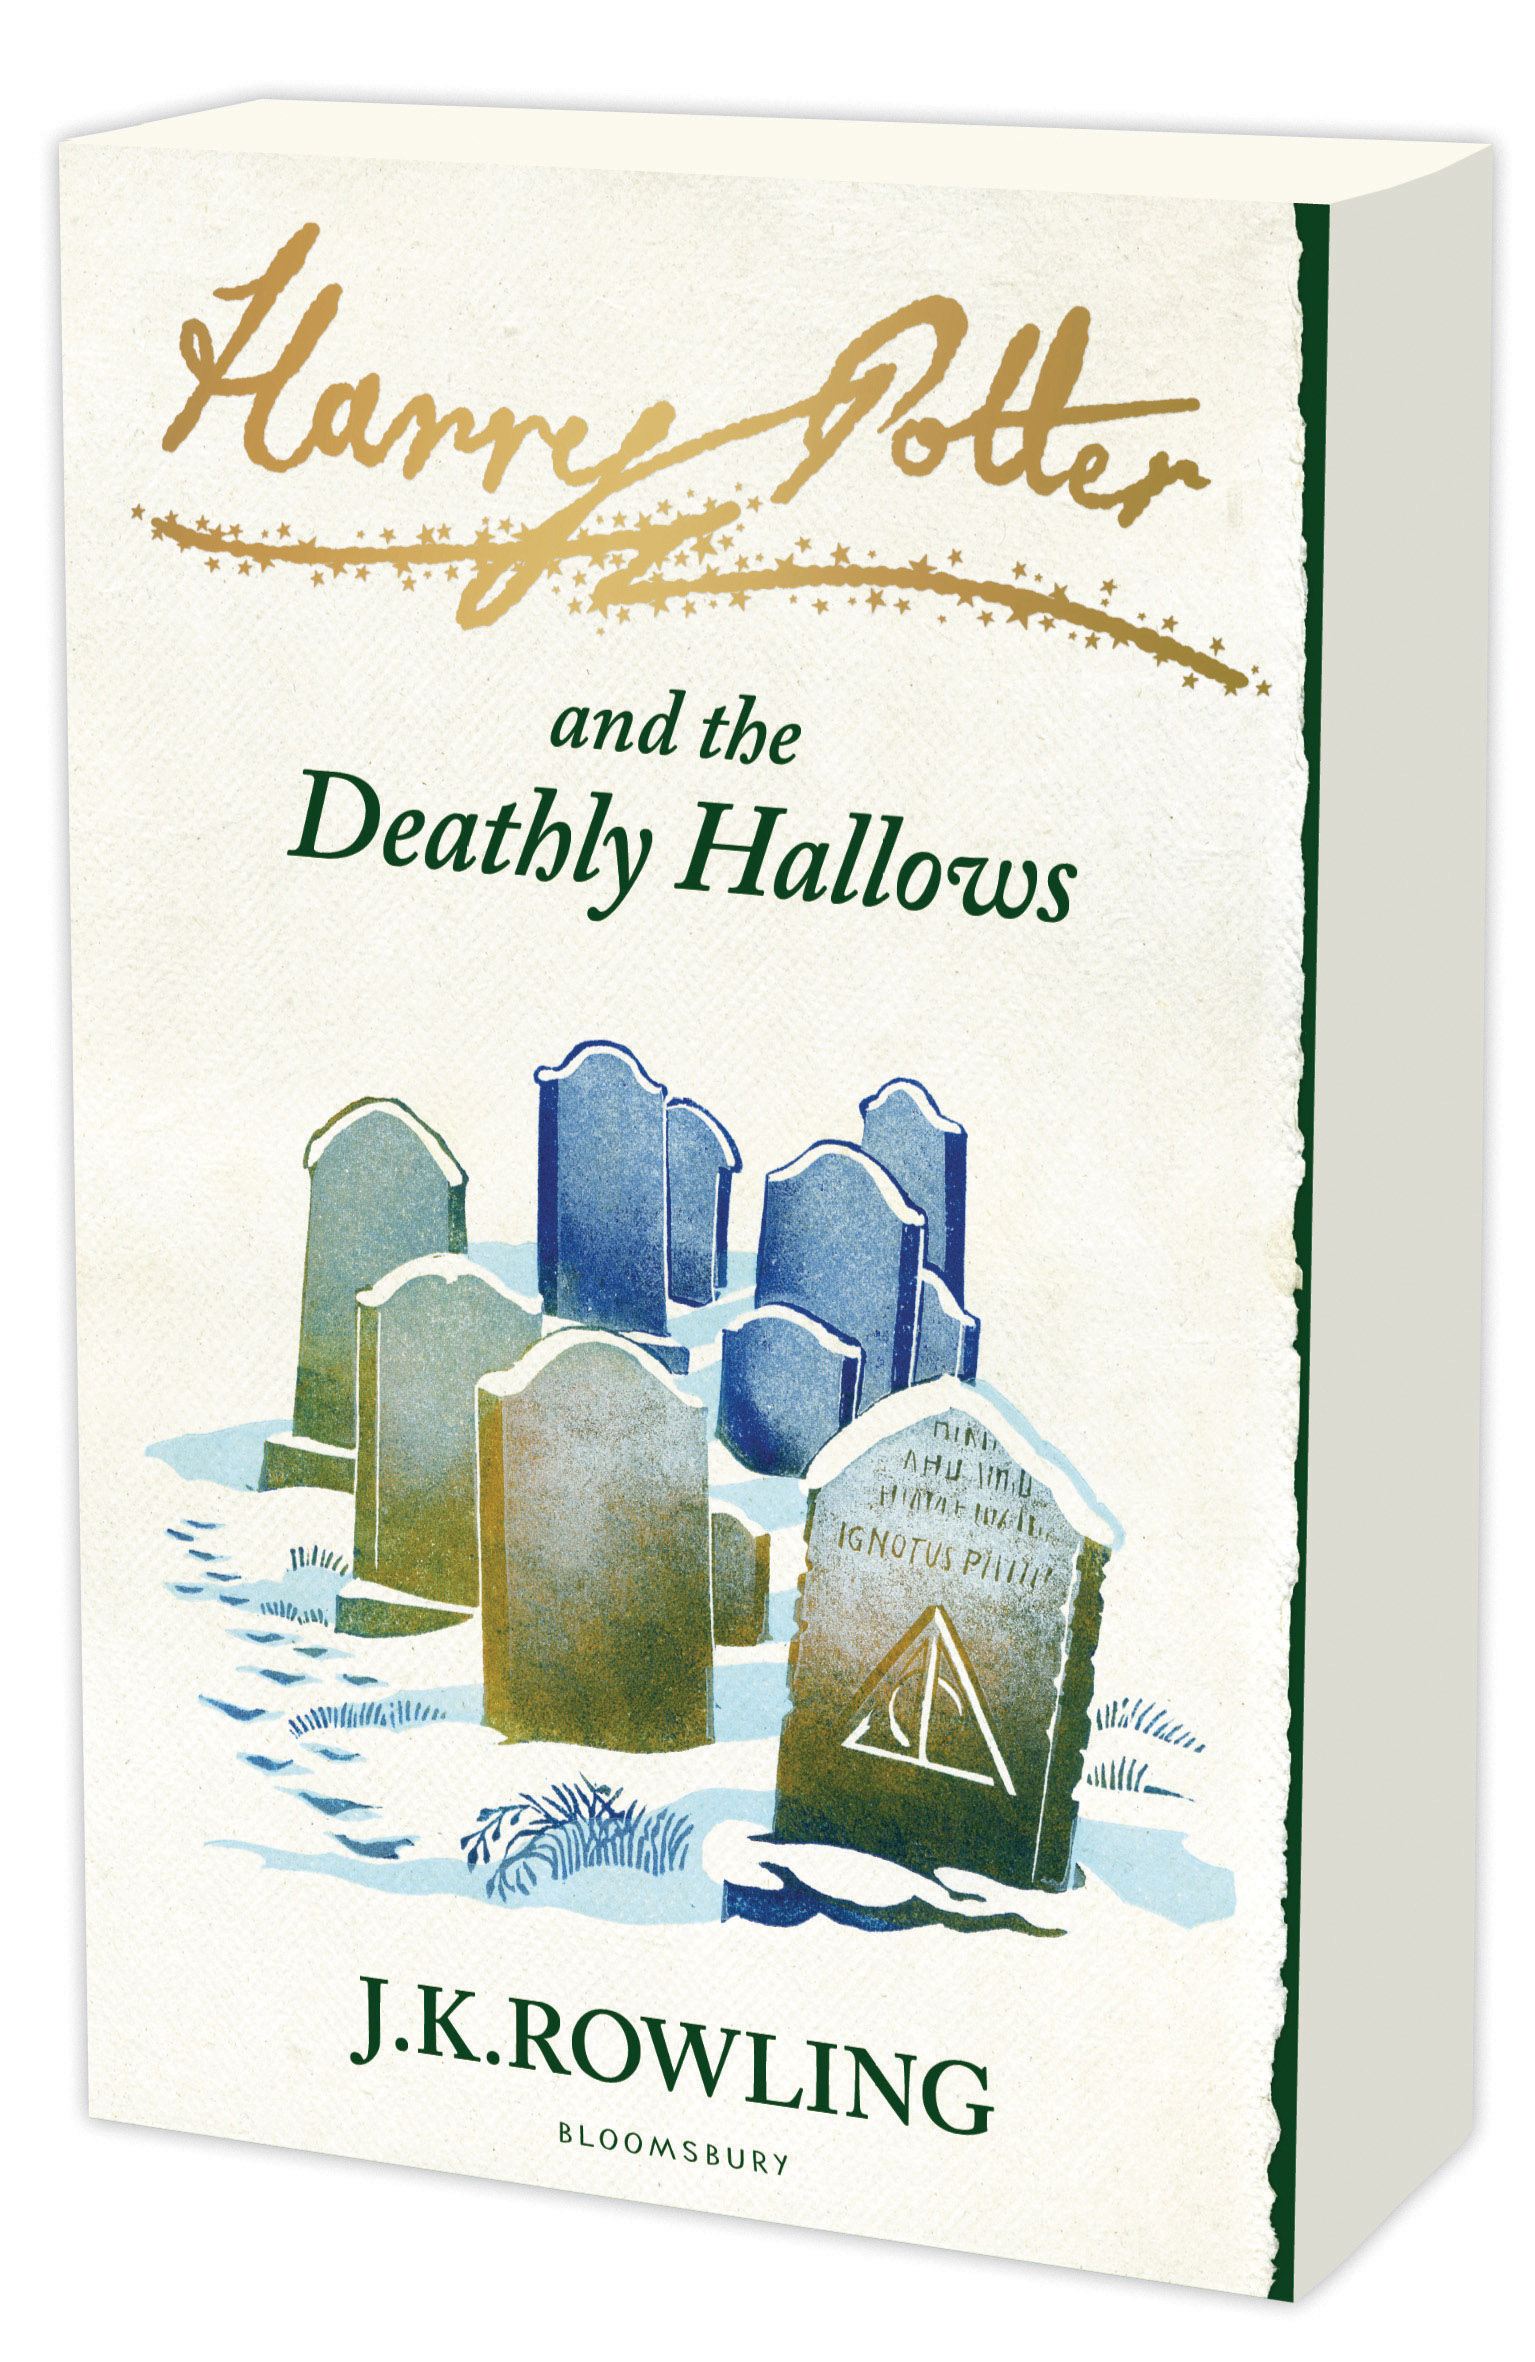 Harry Potter and the Deathly Hallows signature edition